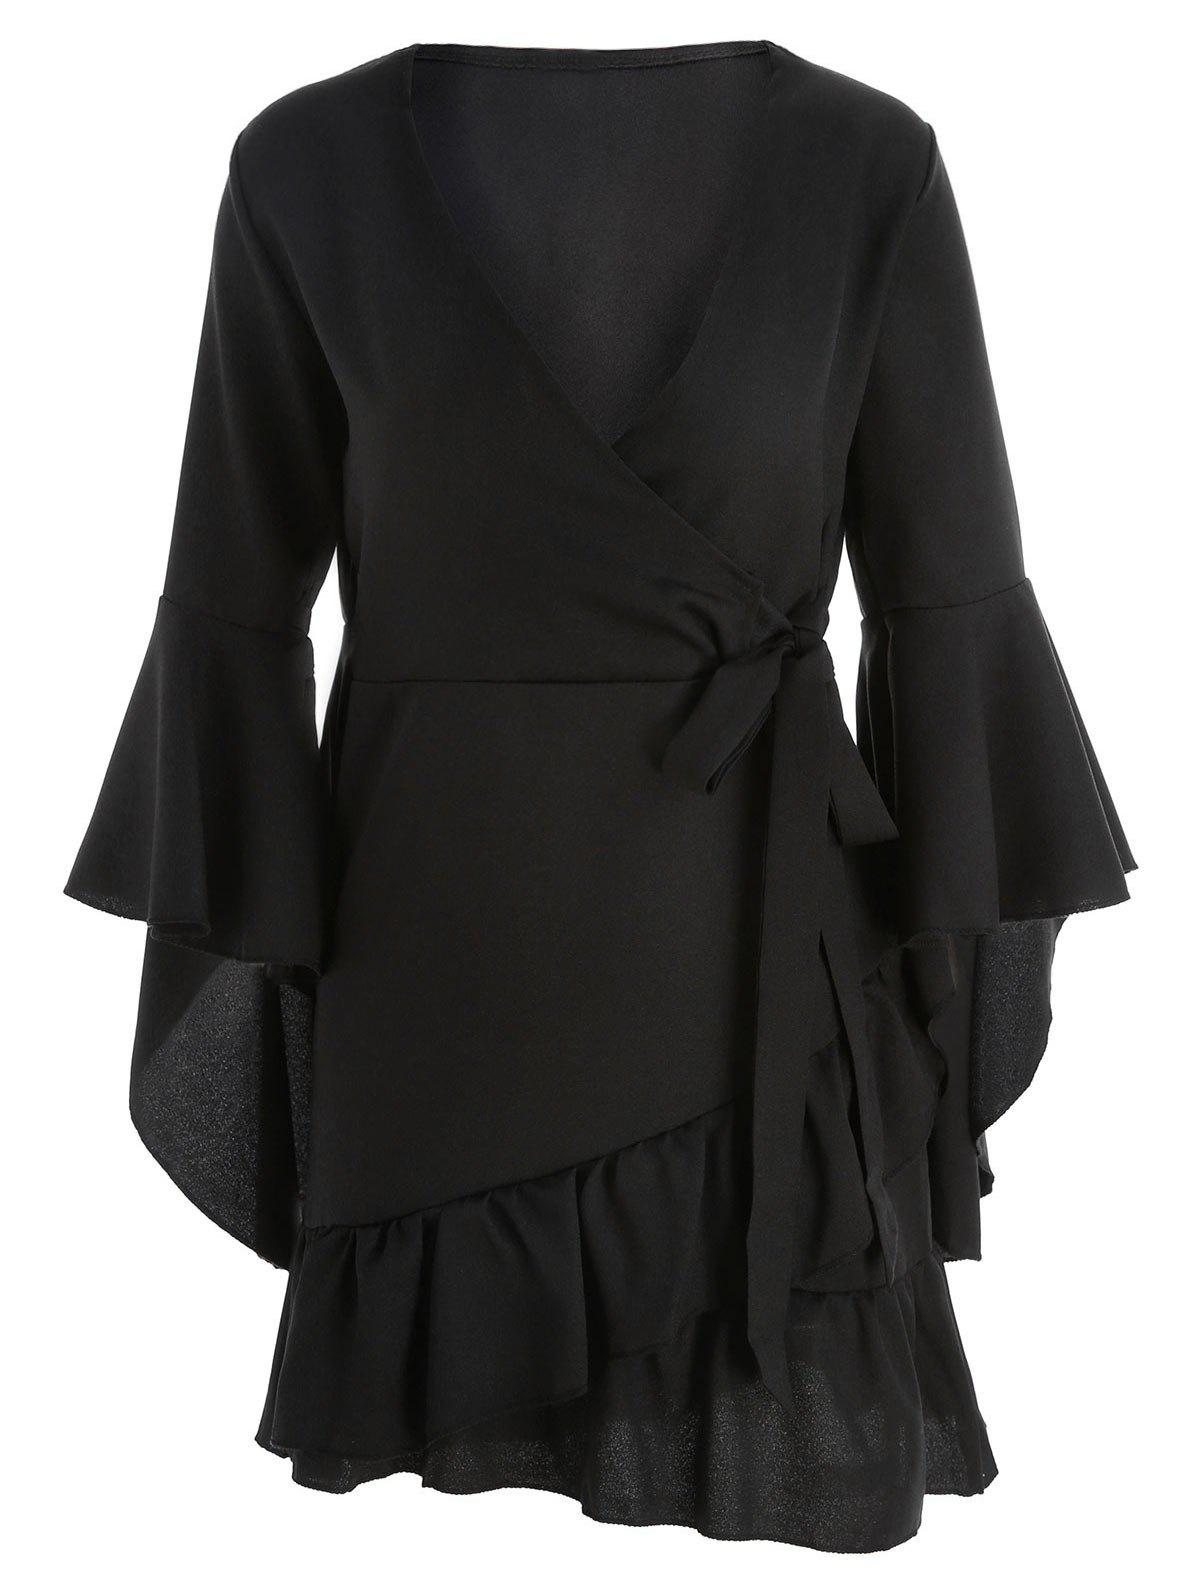 New Flare Sleeve Flounce Wrap Dress